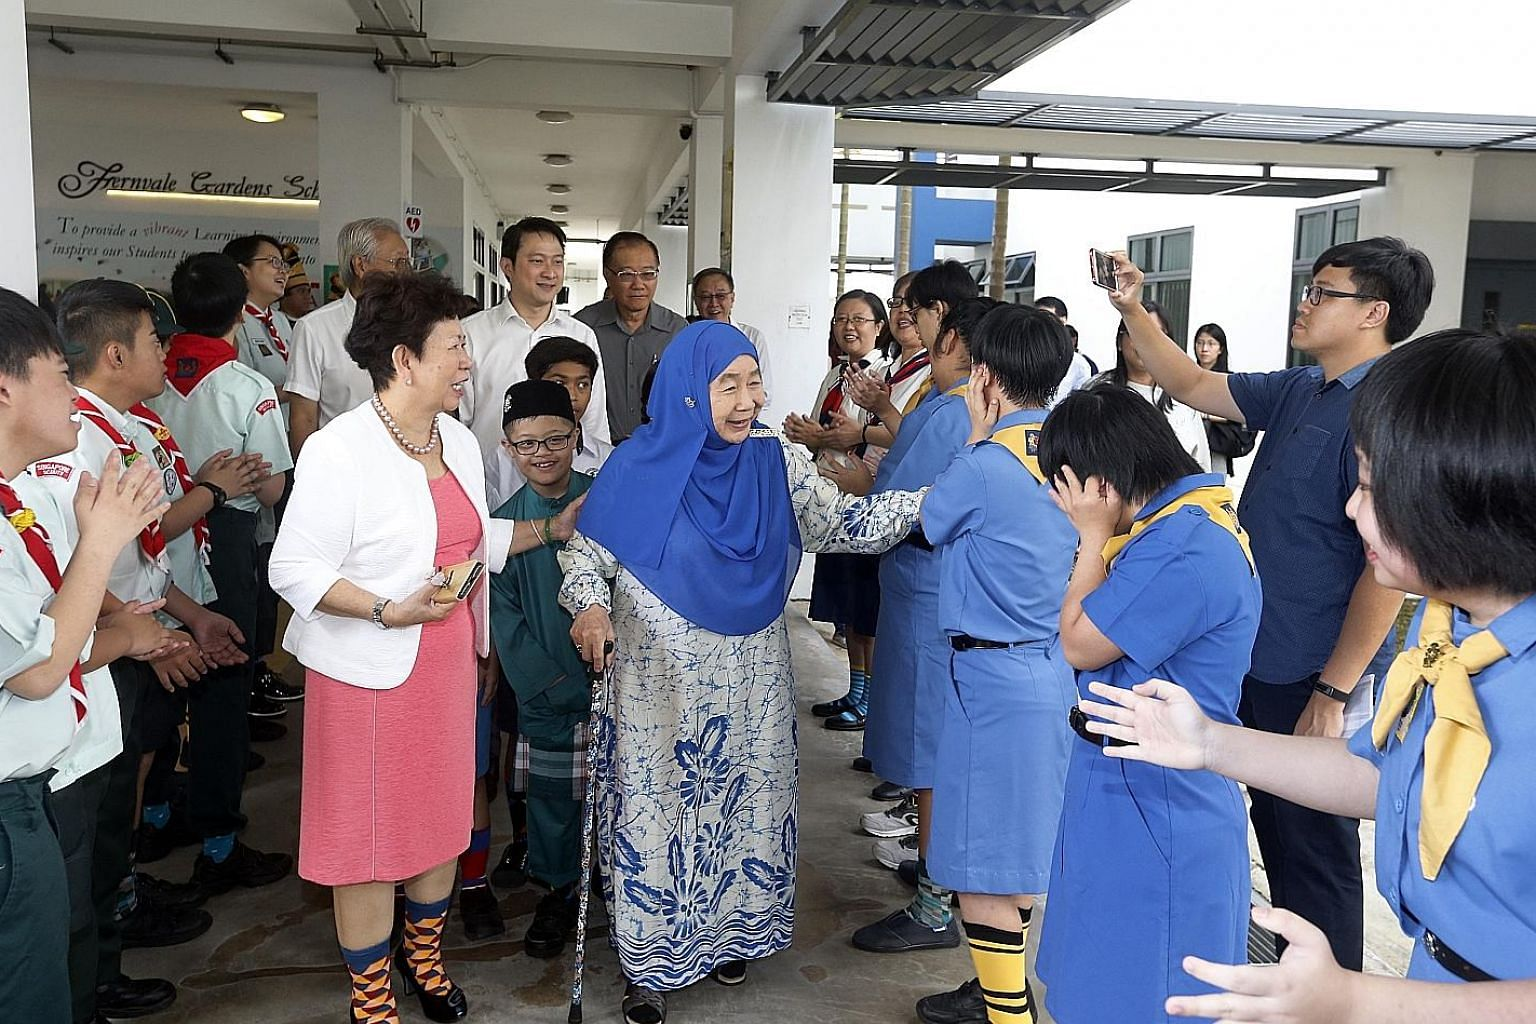 The Friendship Gate has linked Fernvale Gardens School and Fernvale Primary School since 2010, to facilitate interactions between pupils of both schools. Wife of the late president Yusof Ishak, Puan Noor Aishah, at the launch of a new buddy reading p